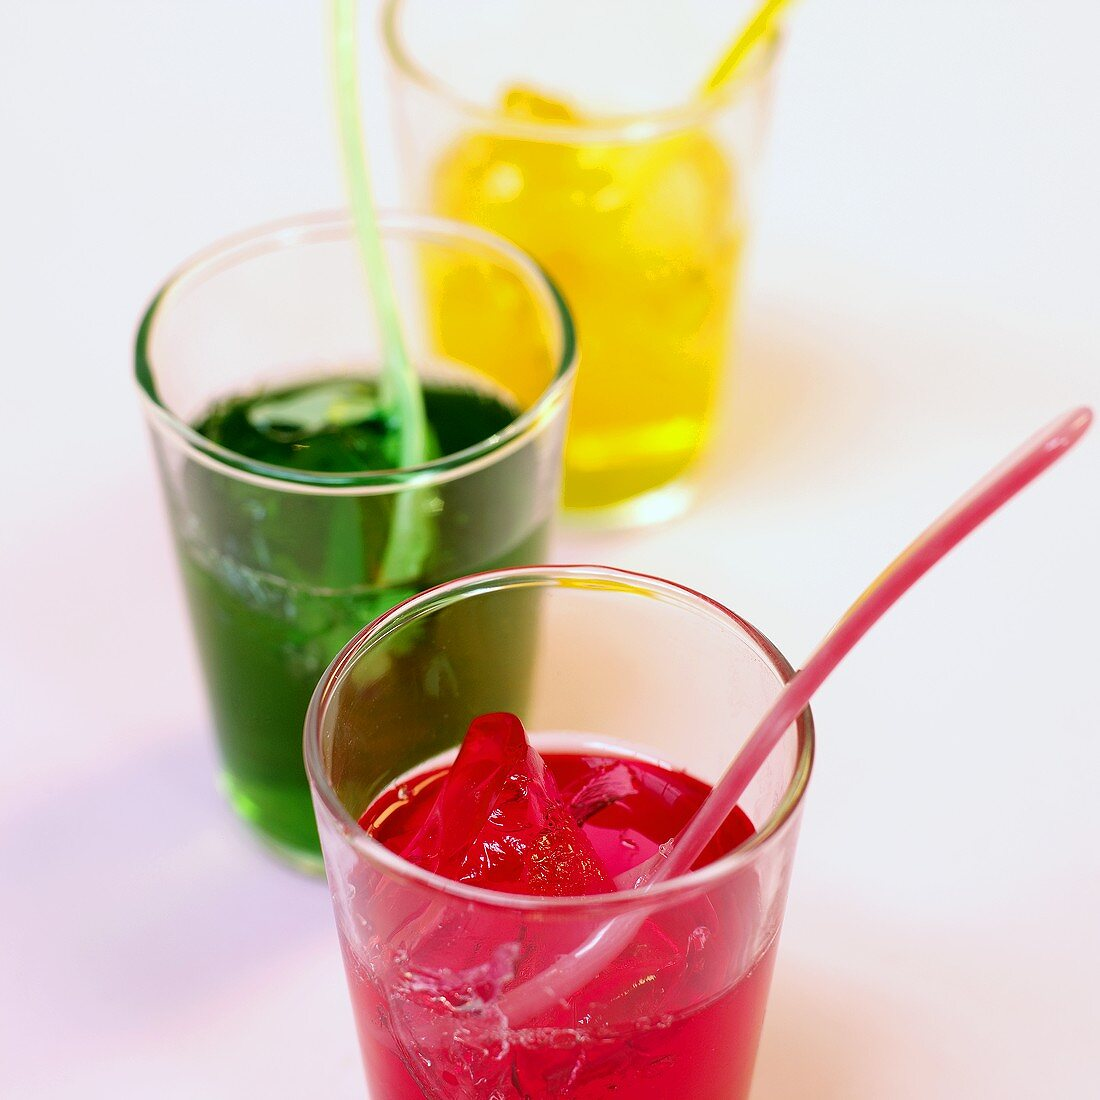 Coloured Jelly Shots (agar jelly, fruit syrup and vodka)